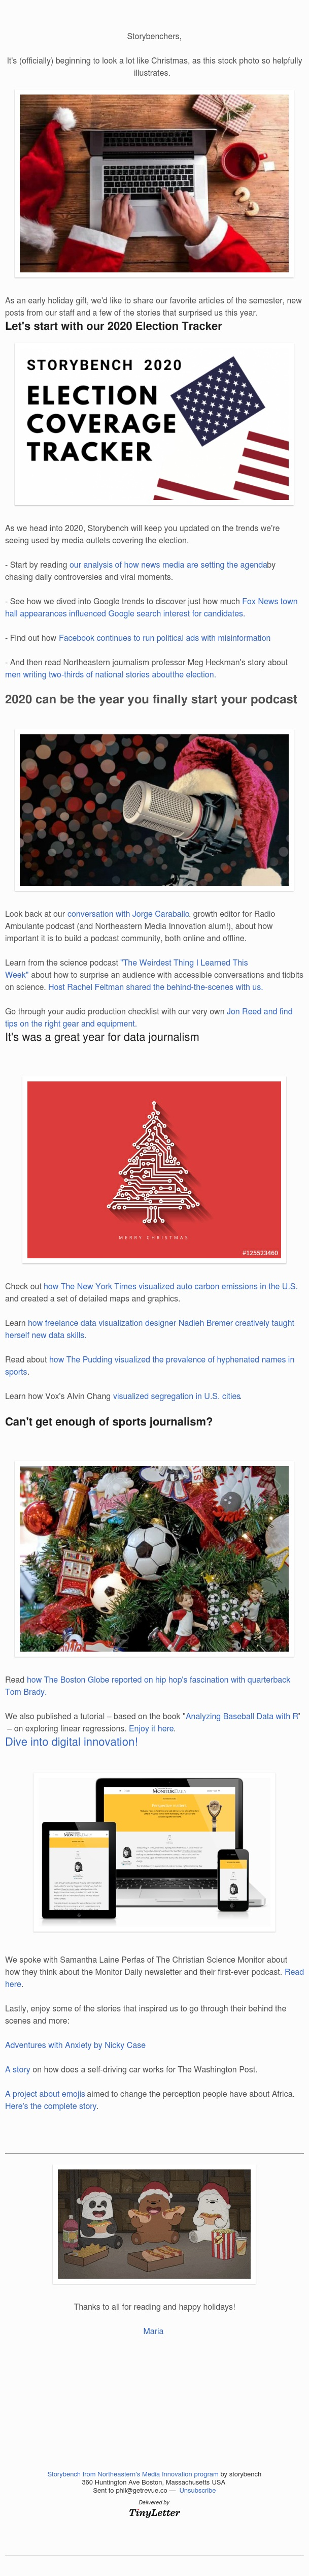 A stocking-full of articles on data journalism, media innovation and covering 2020